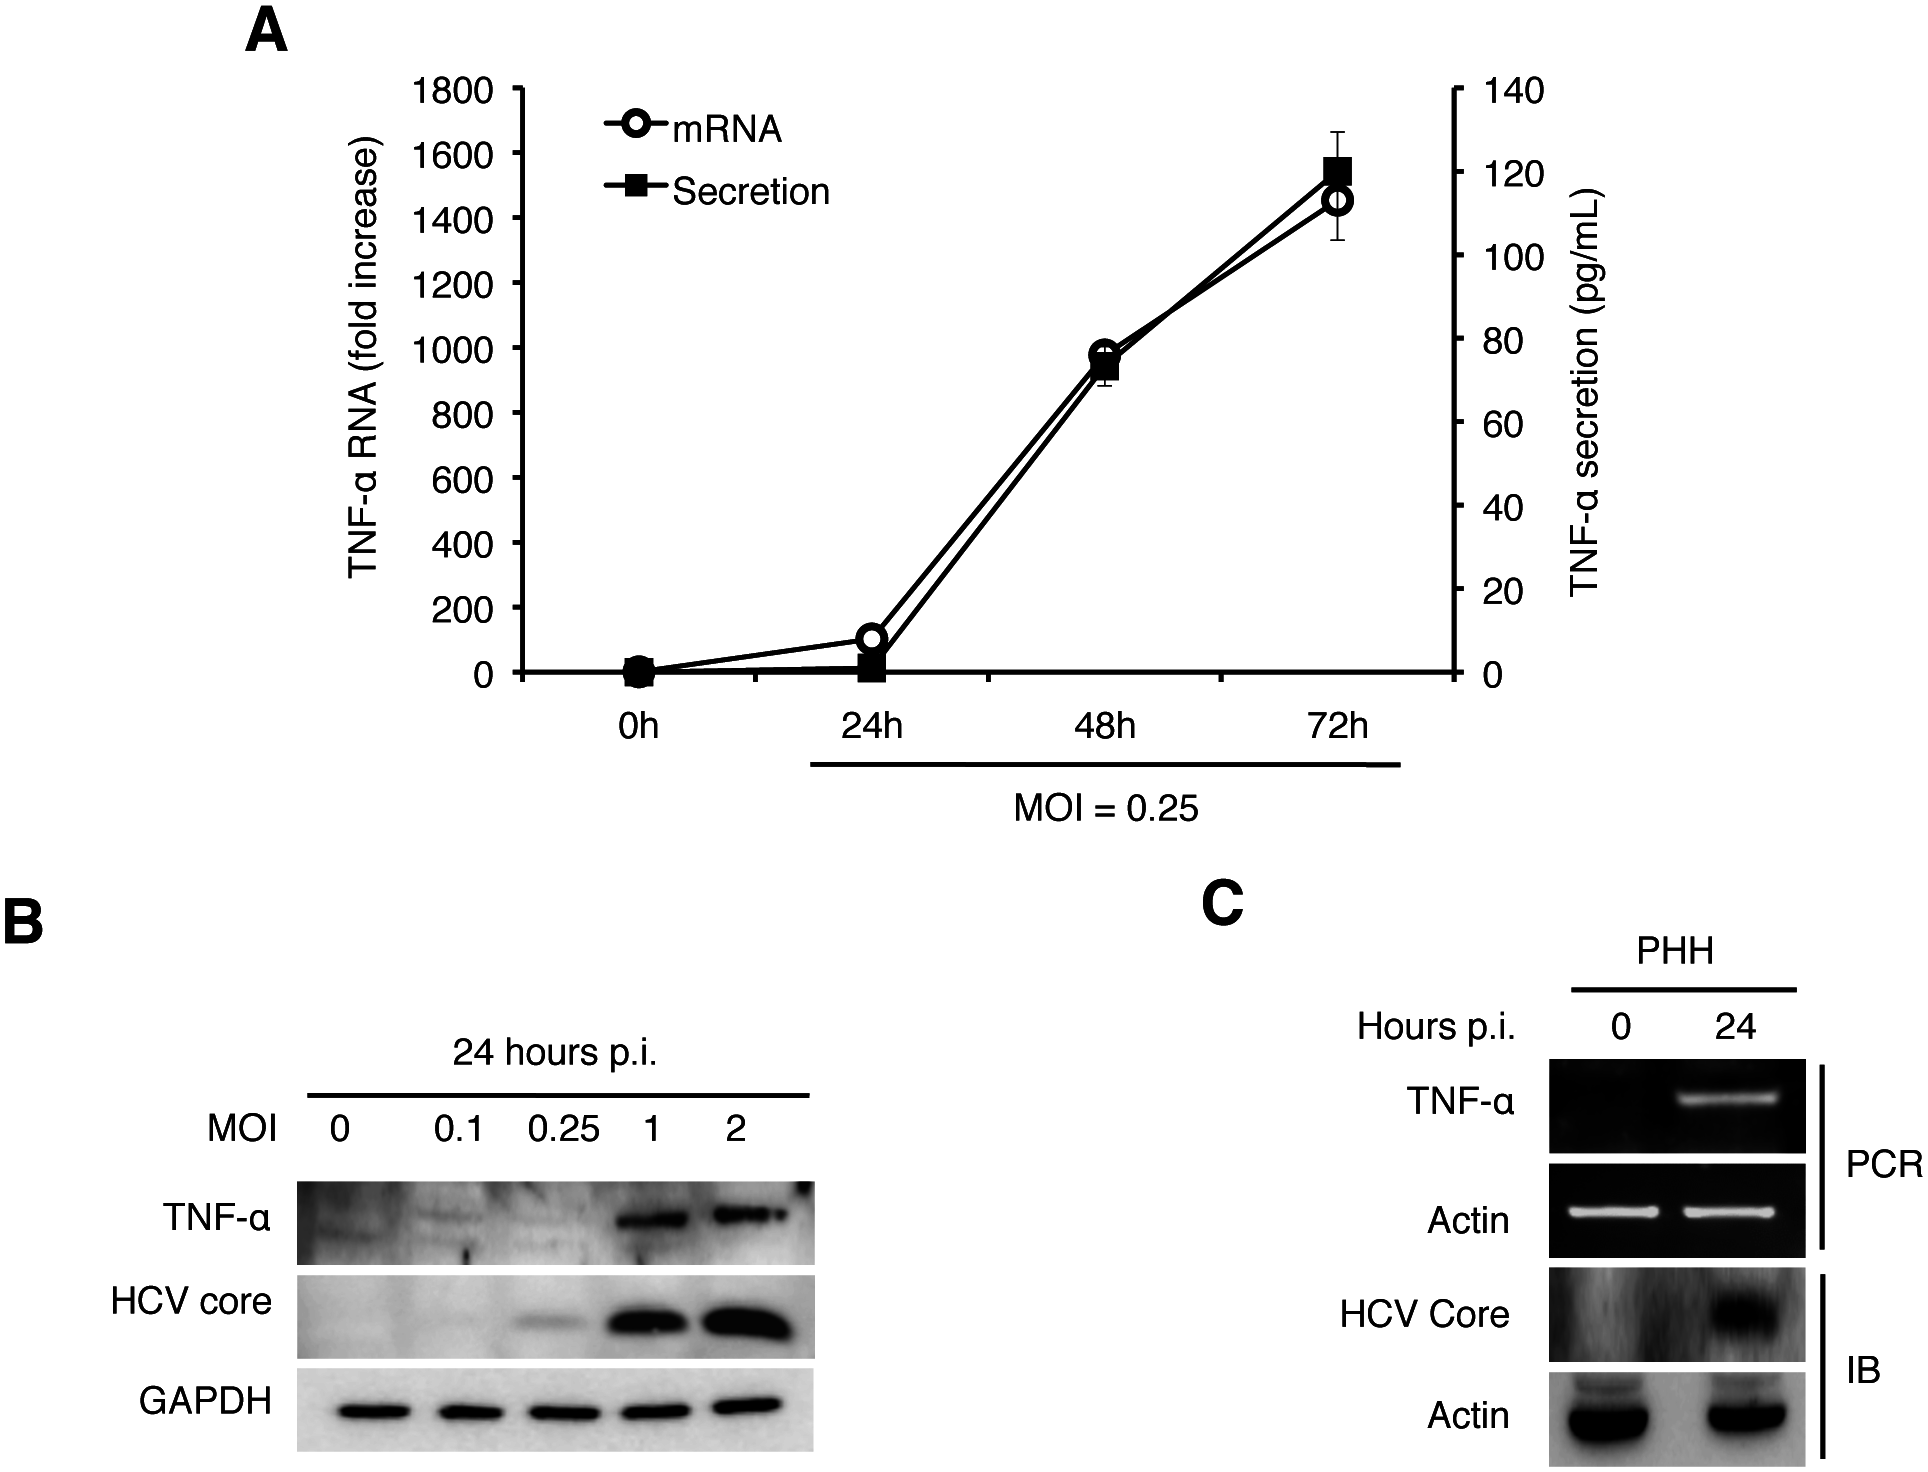 Induction of TNF-α by HCV.